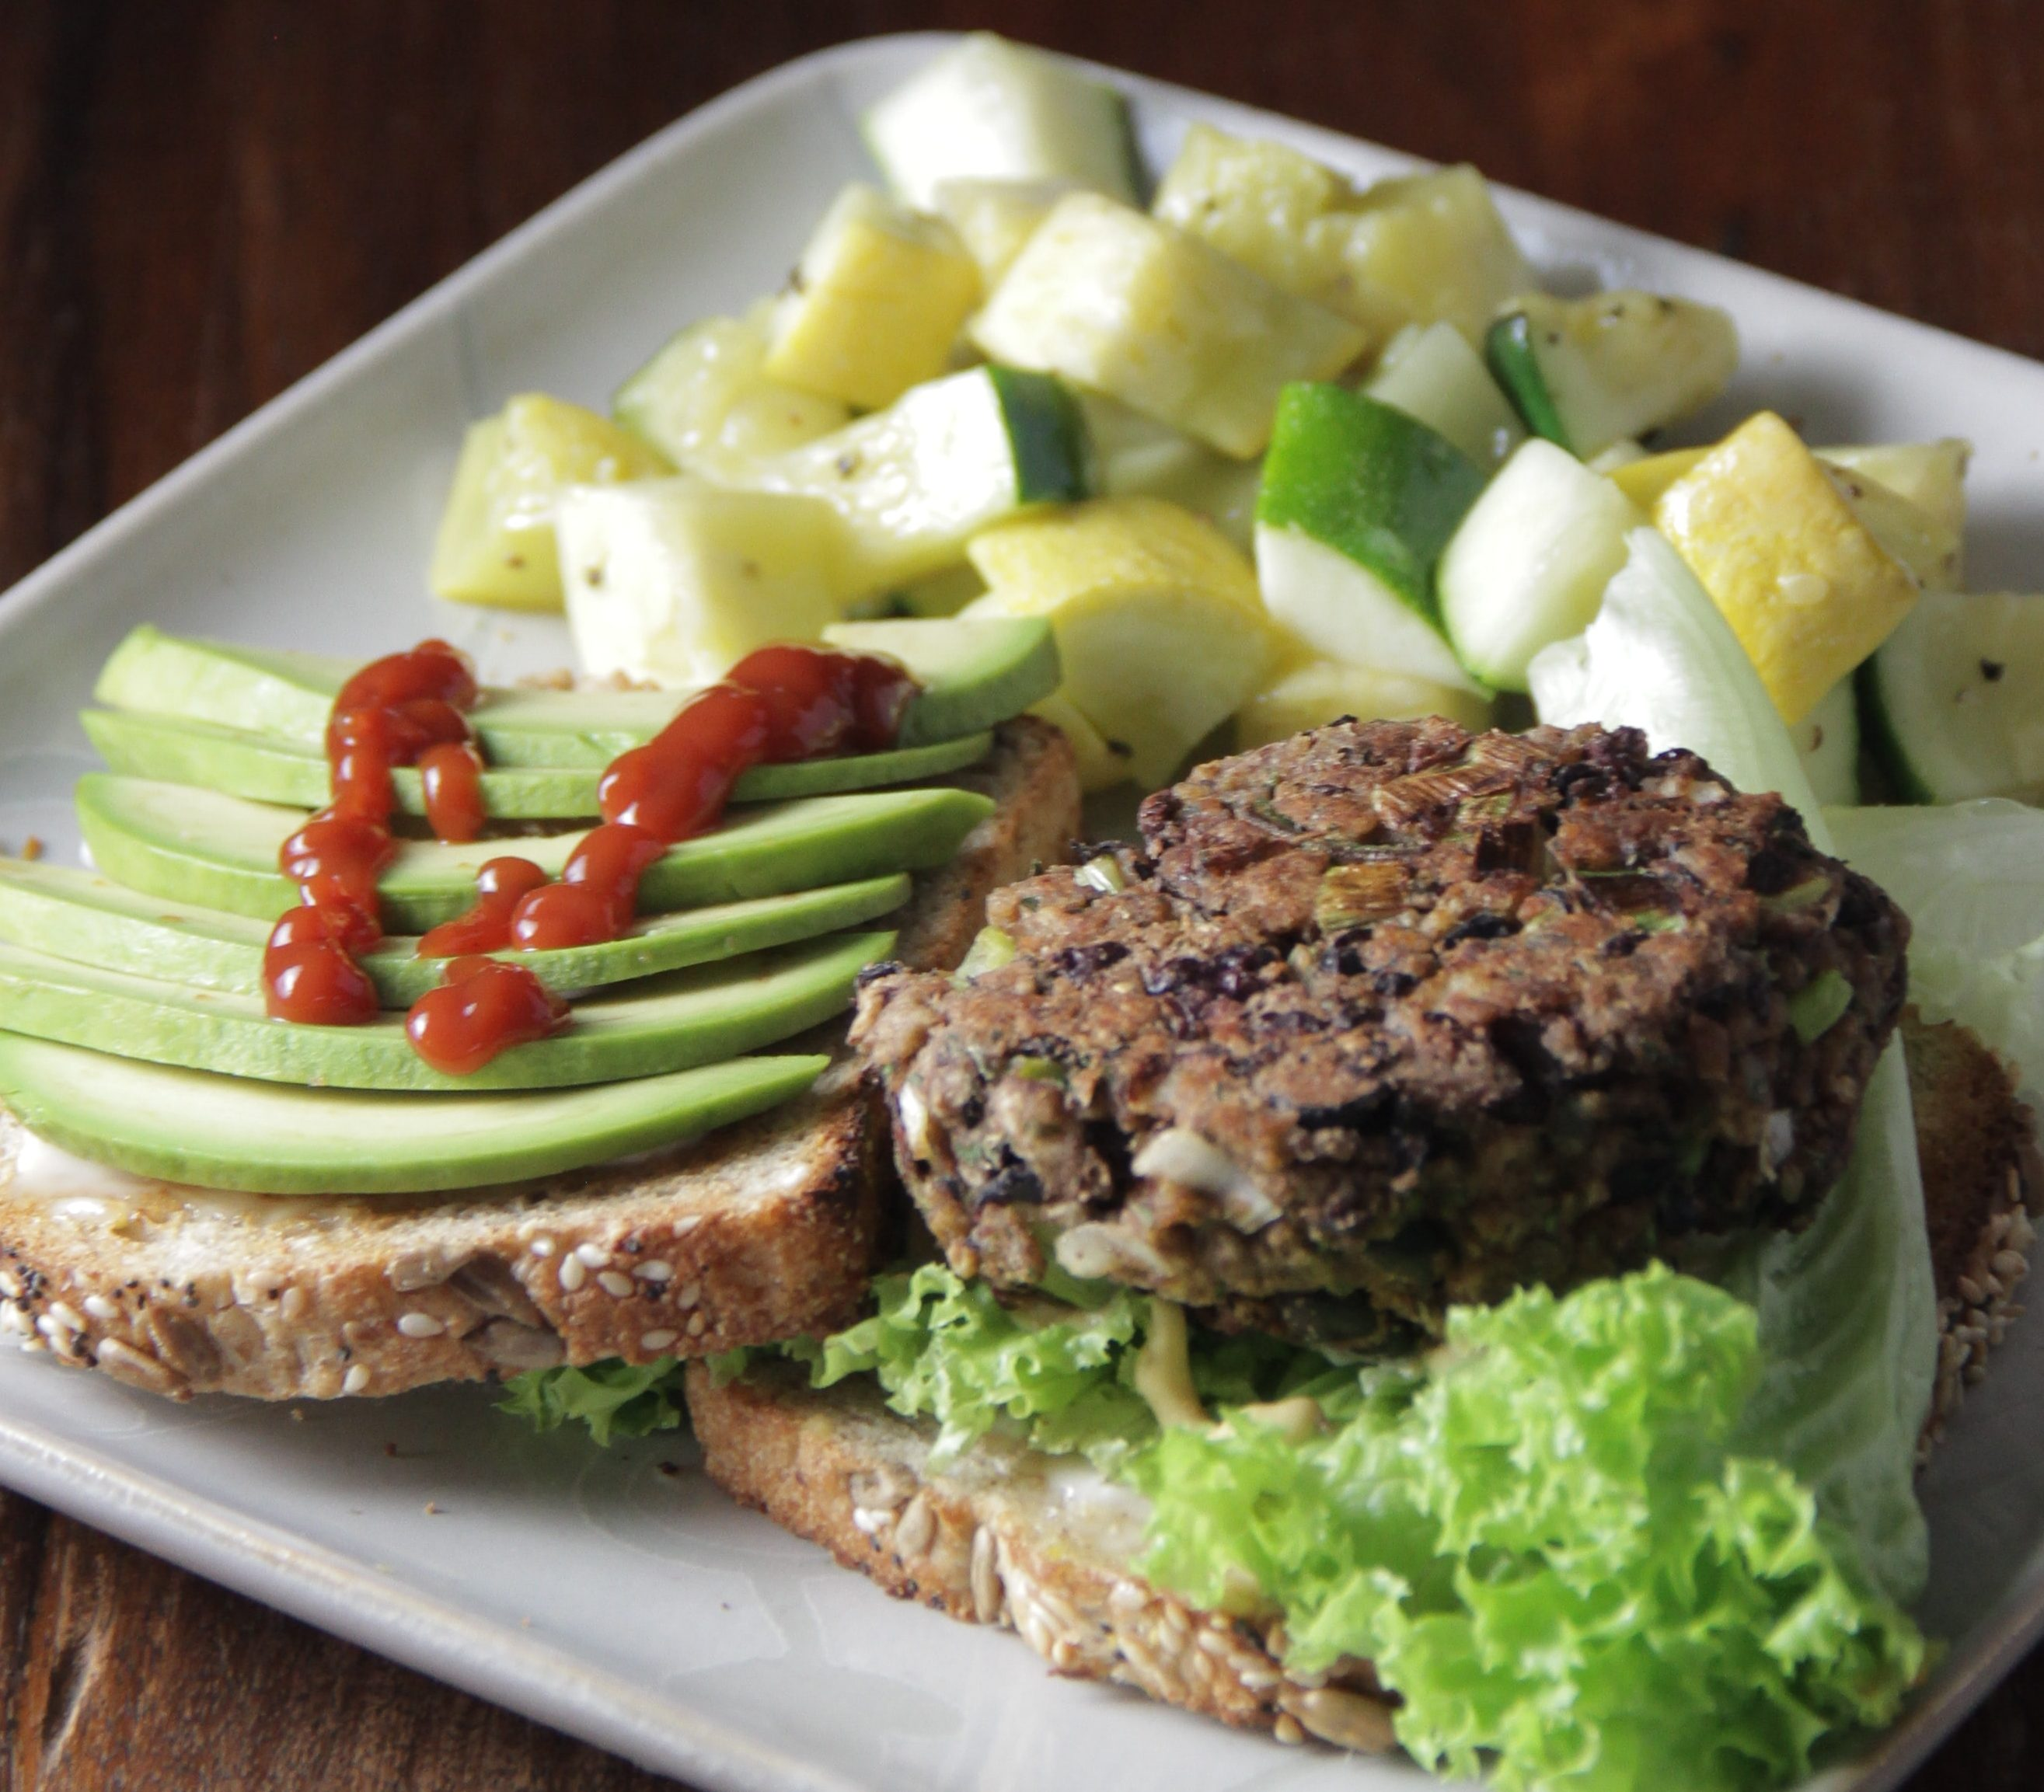 Oh Yes A Black Bean Burger!  New recipe from Patricia of Warmly Nourished